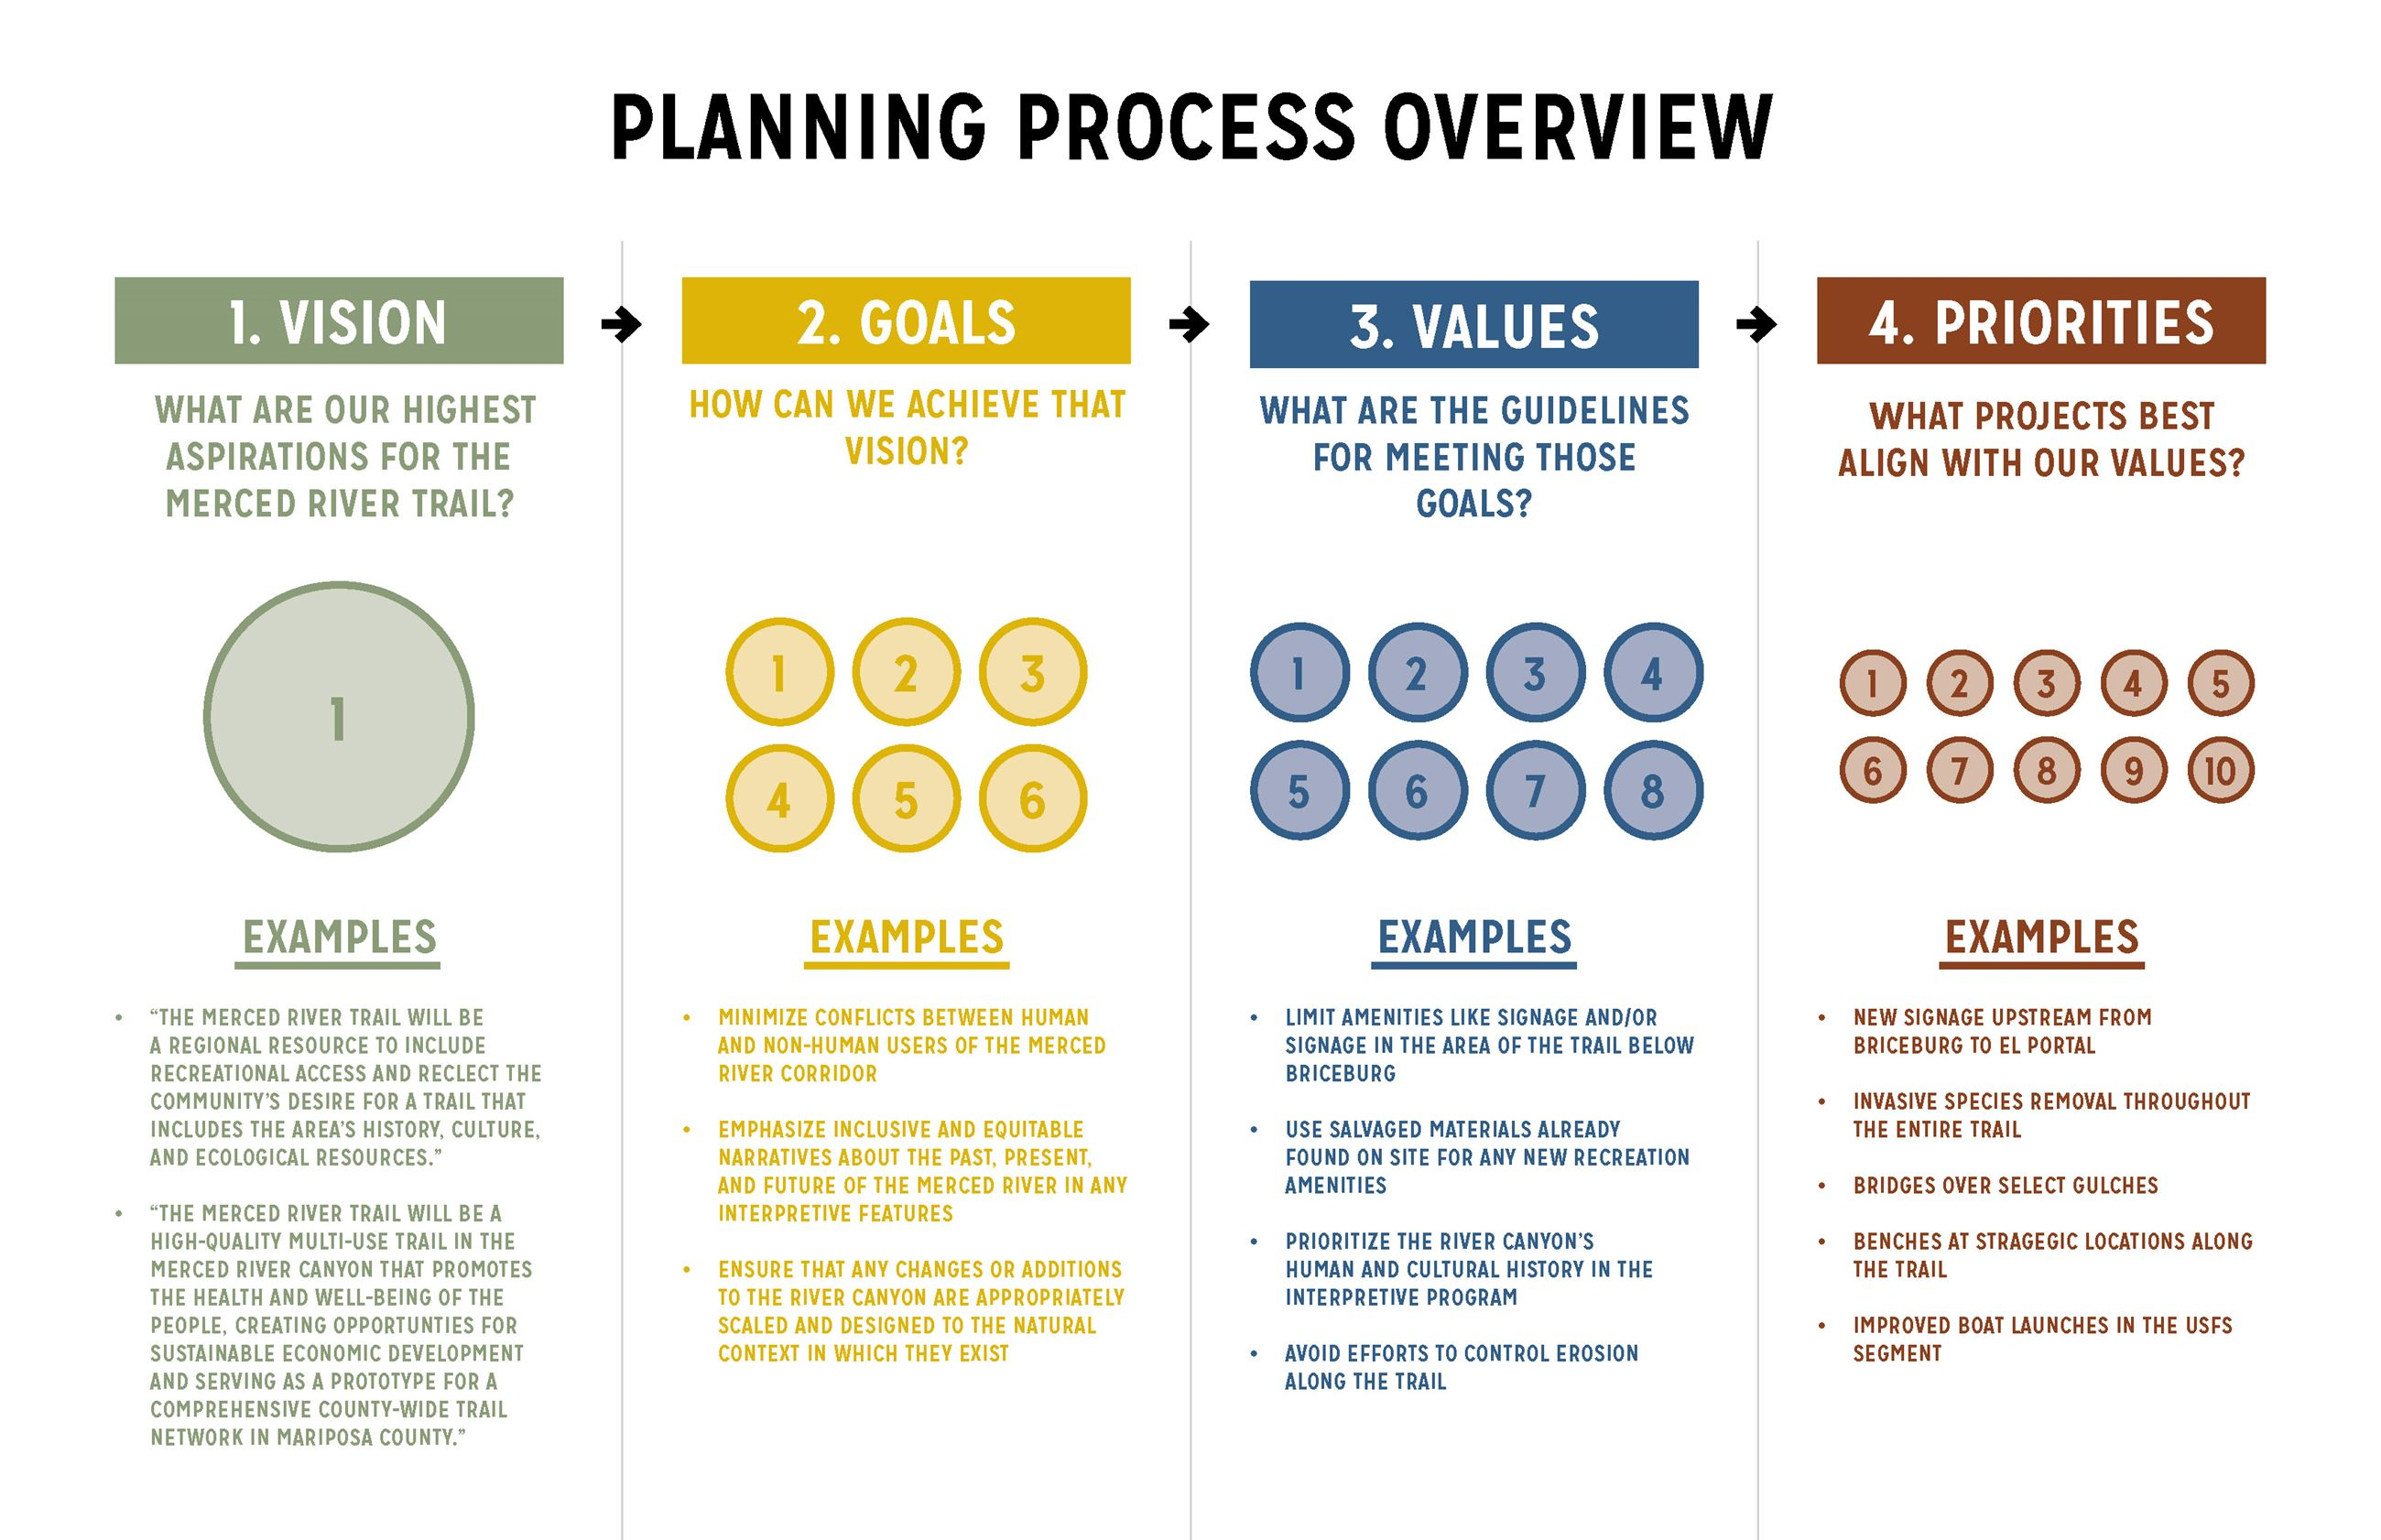 200108 Planning Process Overview_FULL